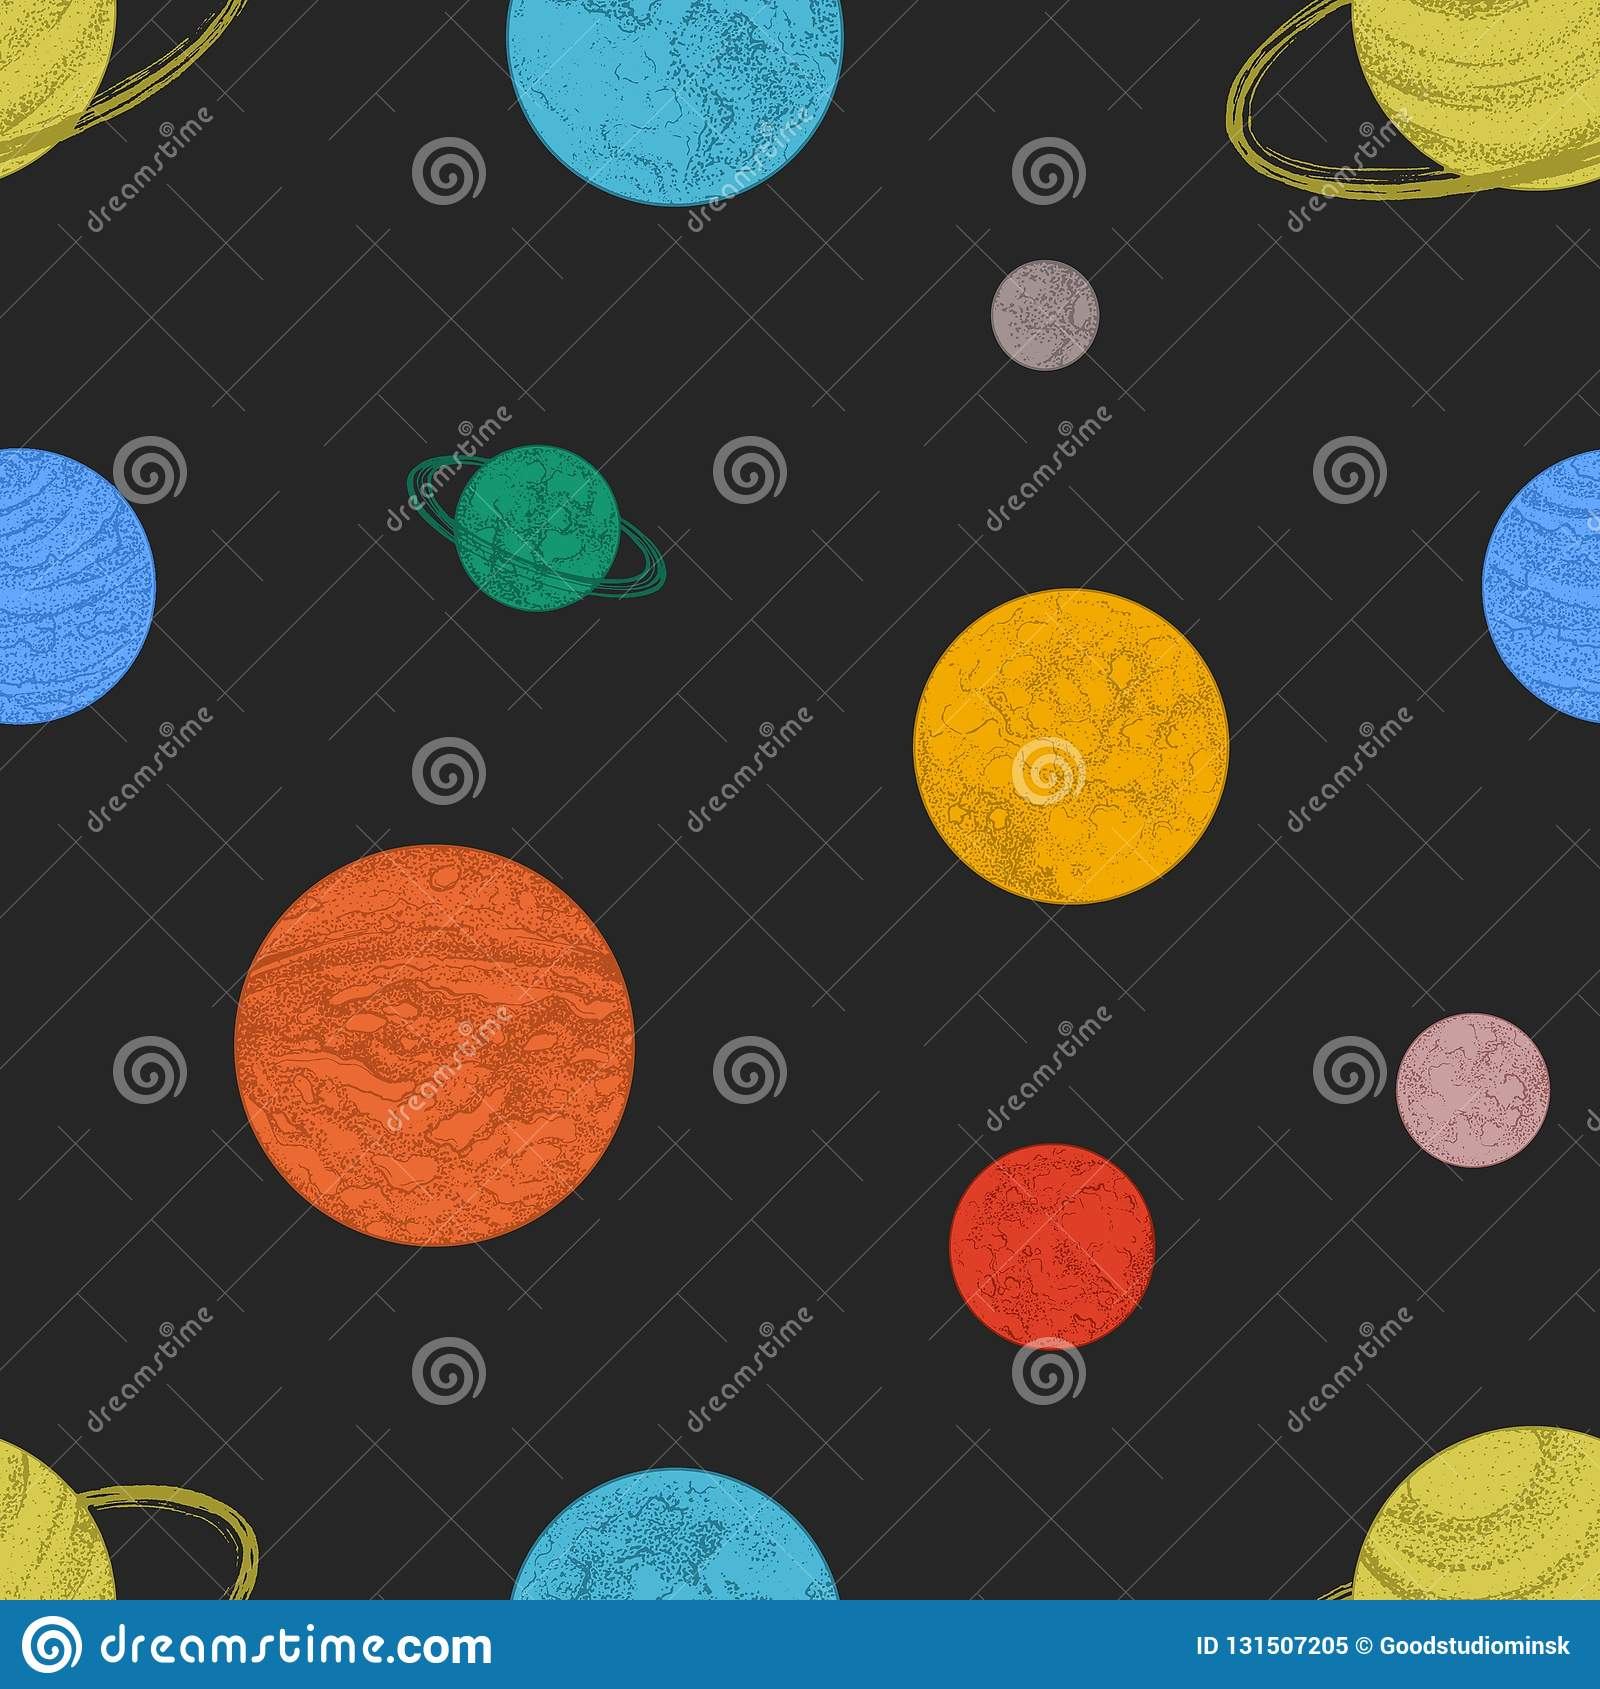 Seamless Pattern With Colorful Planets And Other Space